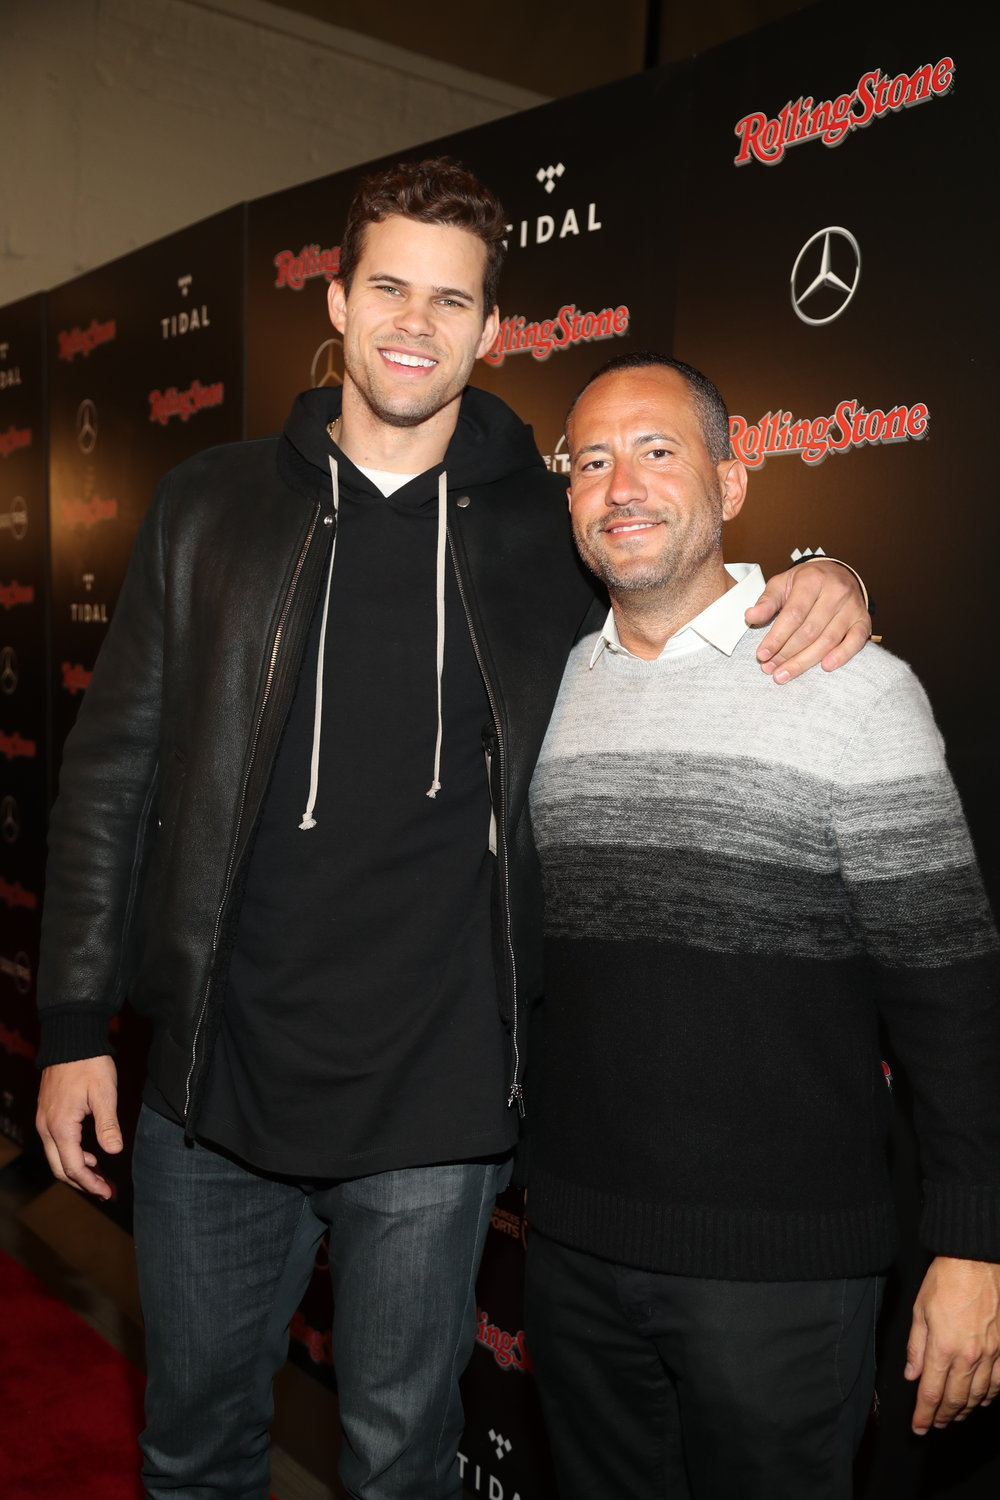 Kris Humphries & David Spencer